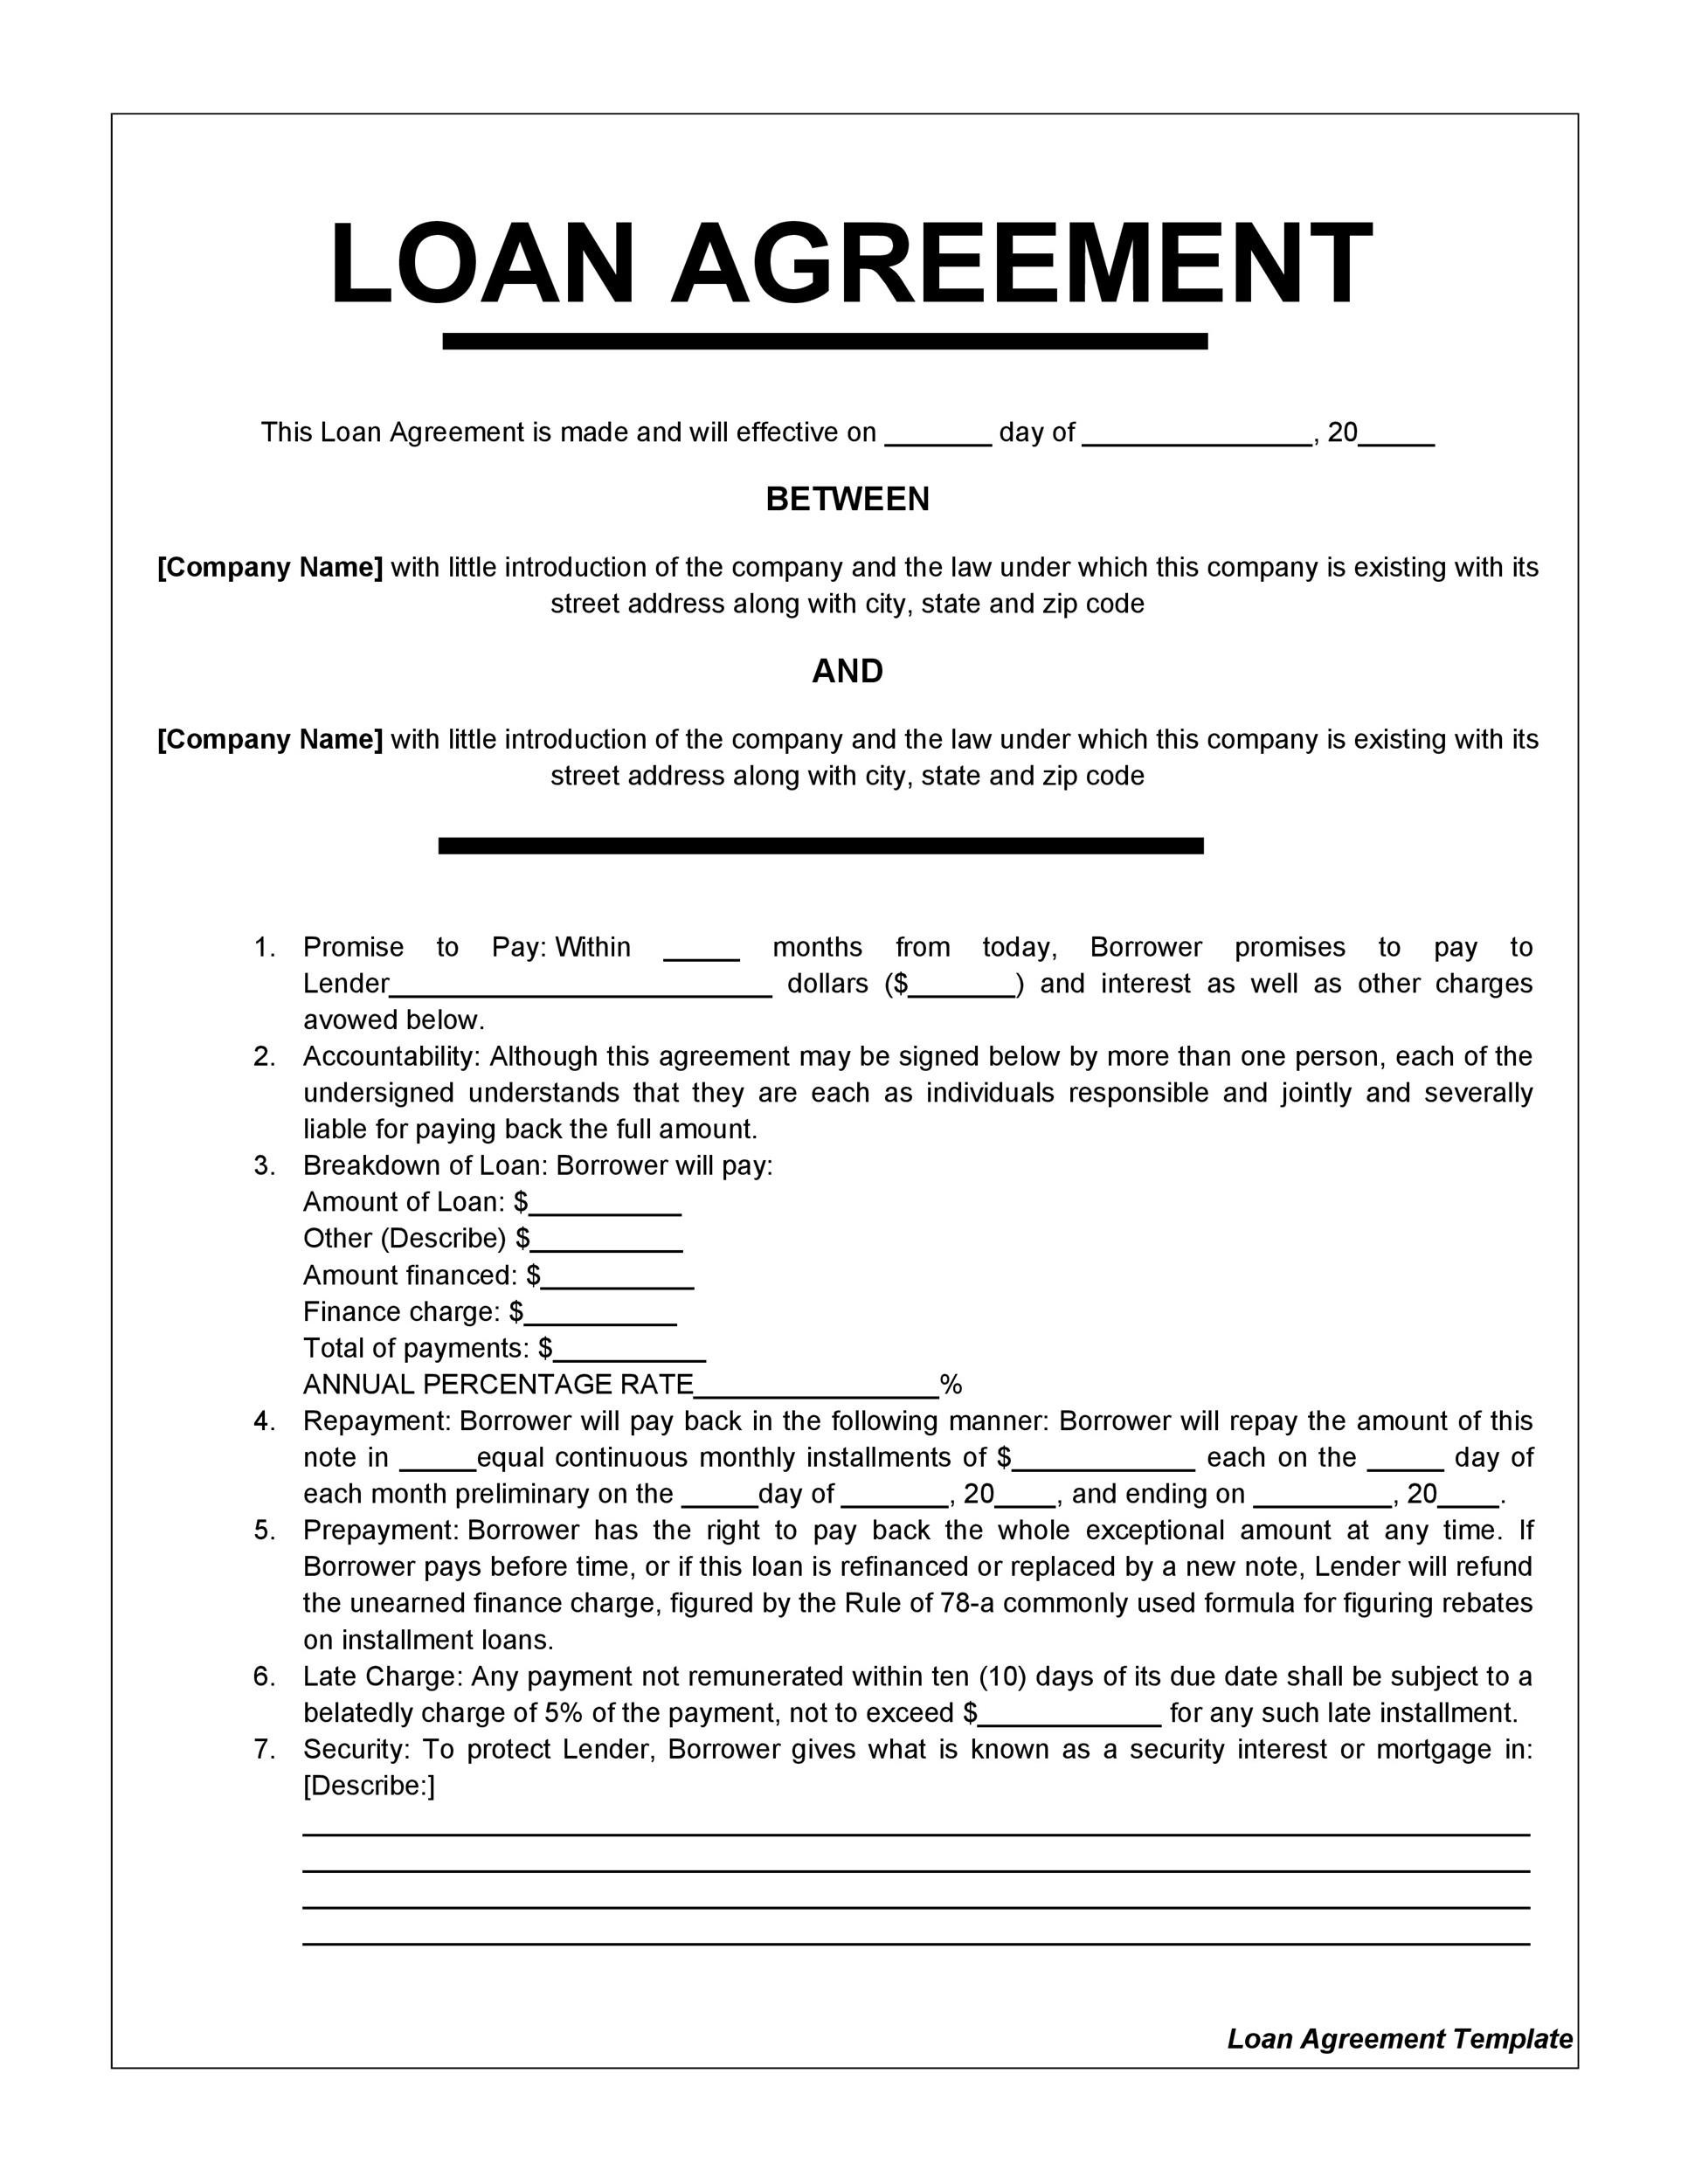 Free Loan Agreement Templates Word  Pdf  Template Lab